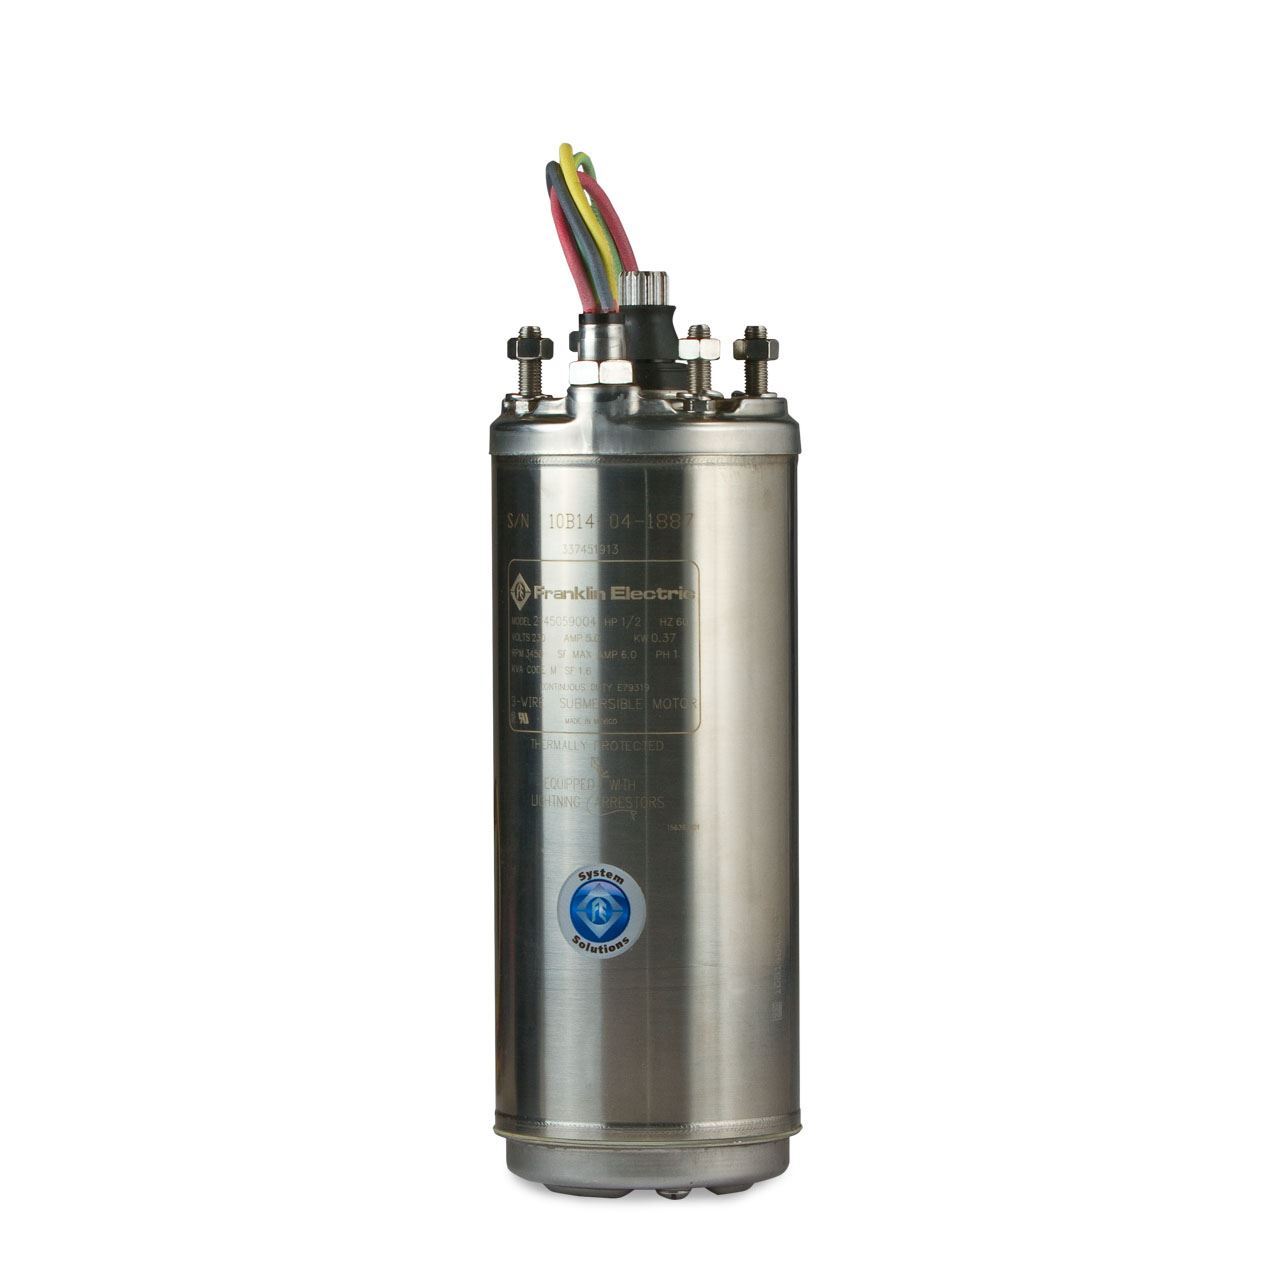 Franklin Well Pump Wiring Best Secret Diagram Electric Submersible Motor Control 2145049004 Super For Box